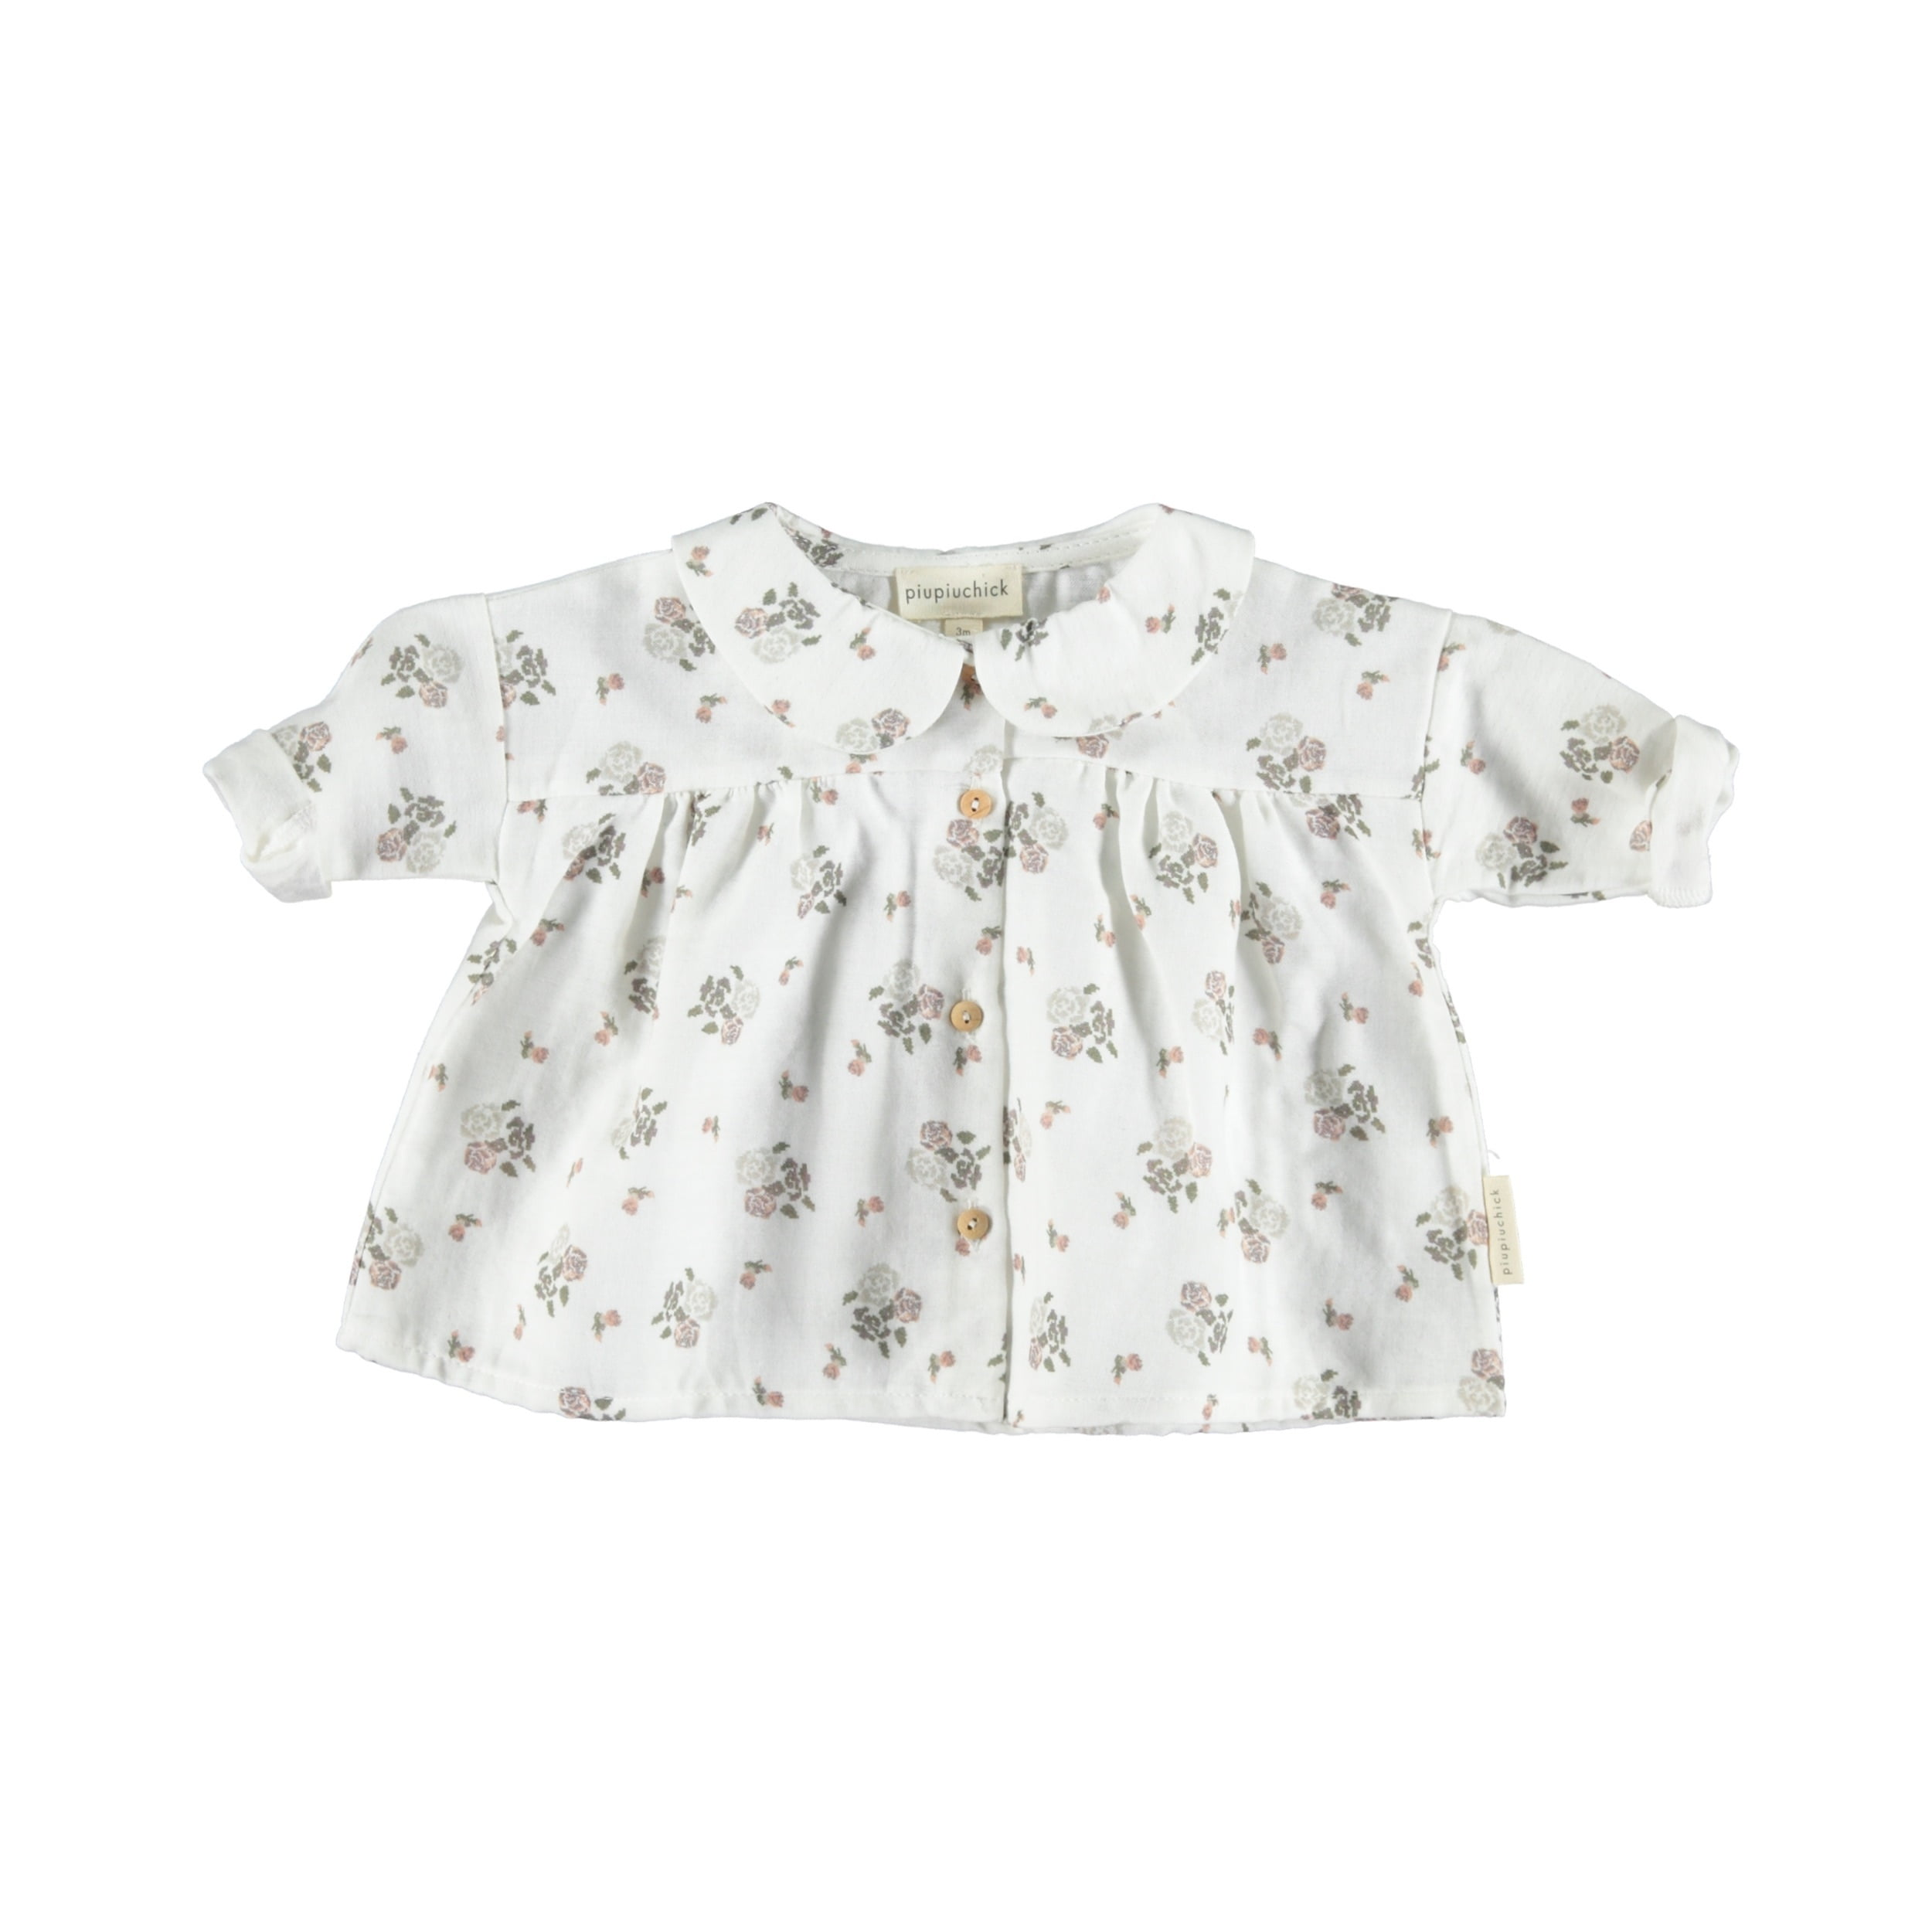 a9b97aac Piupiuchick – Peter pan collar blouse Little flowers – Baby | Miomeraki